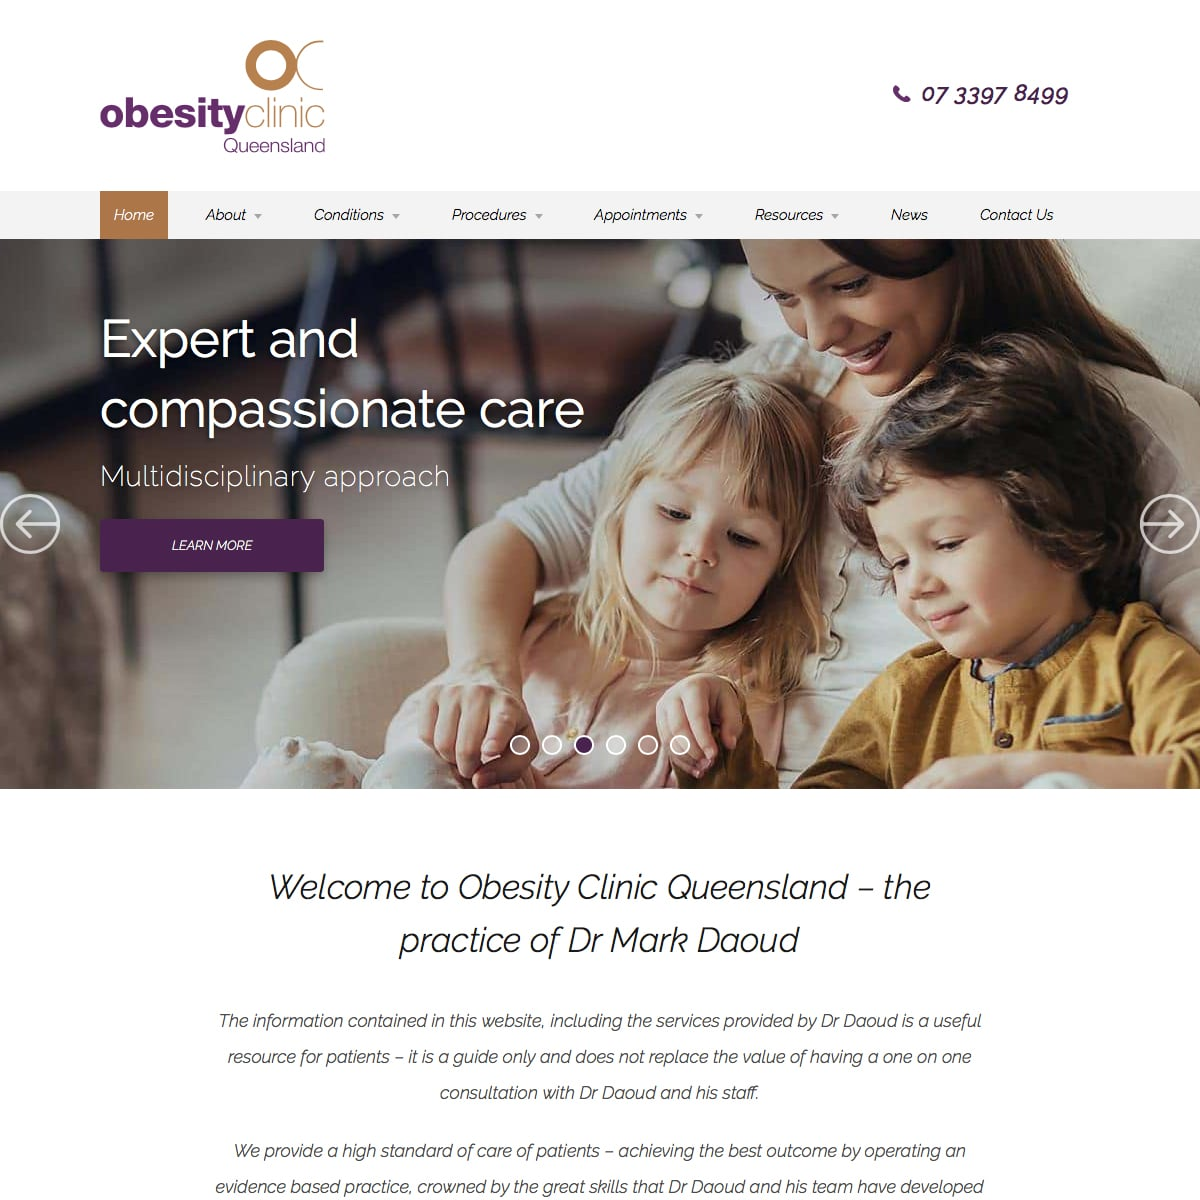 Obesity Clinic Queensland - Home